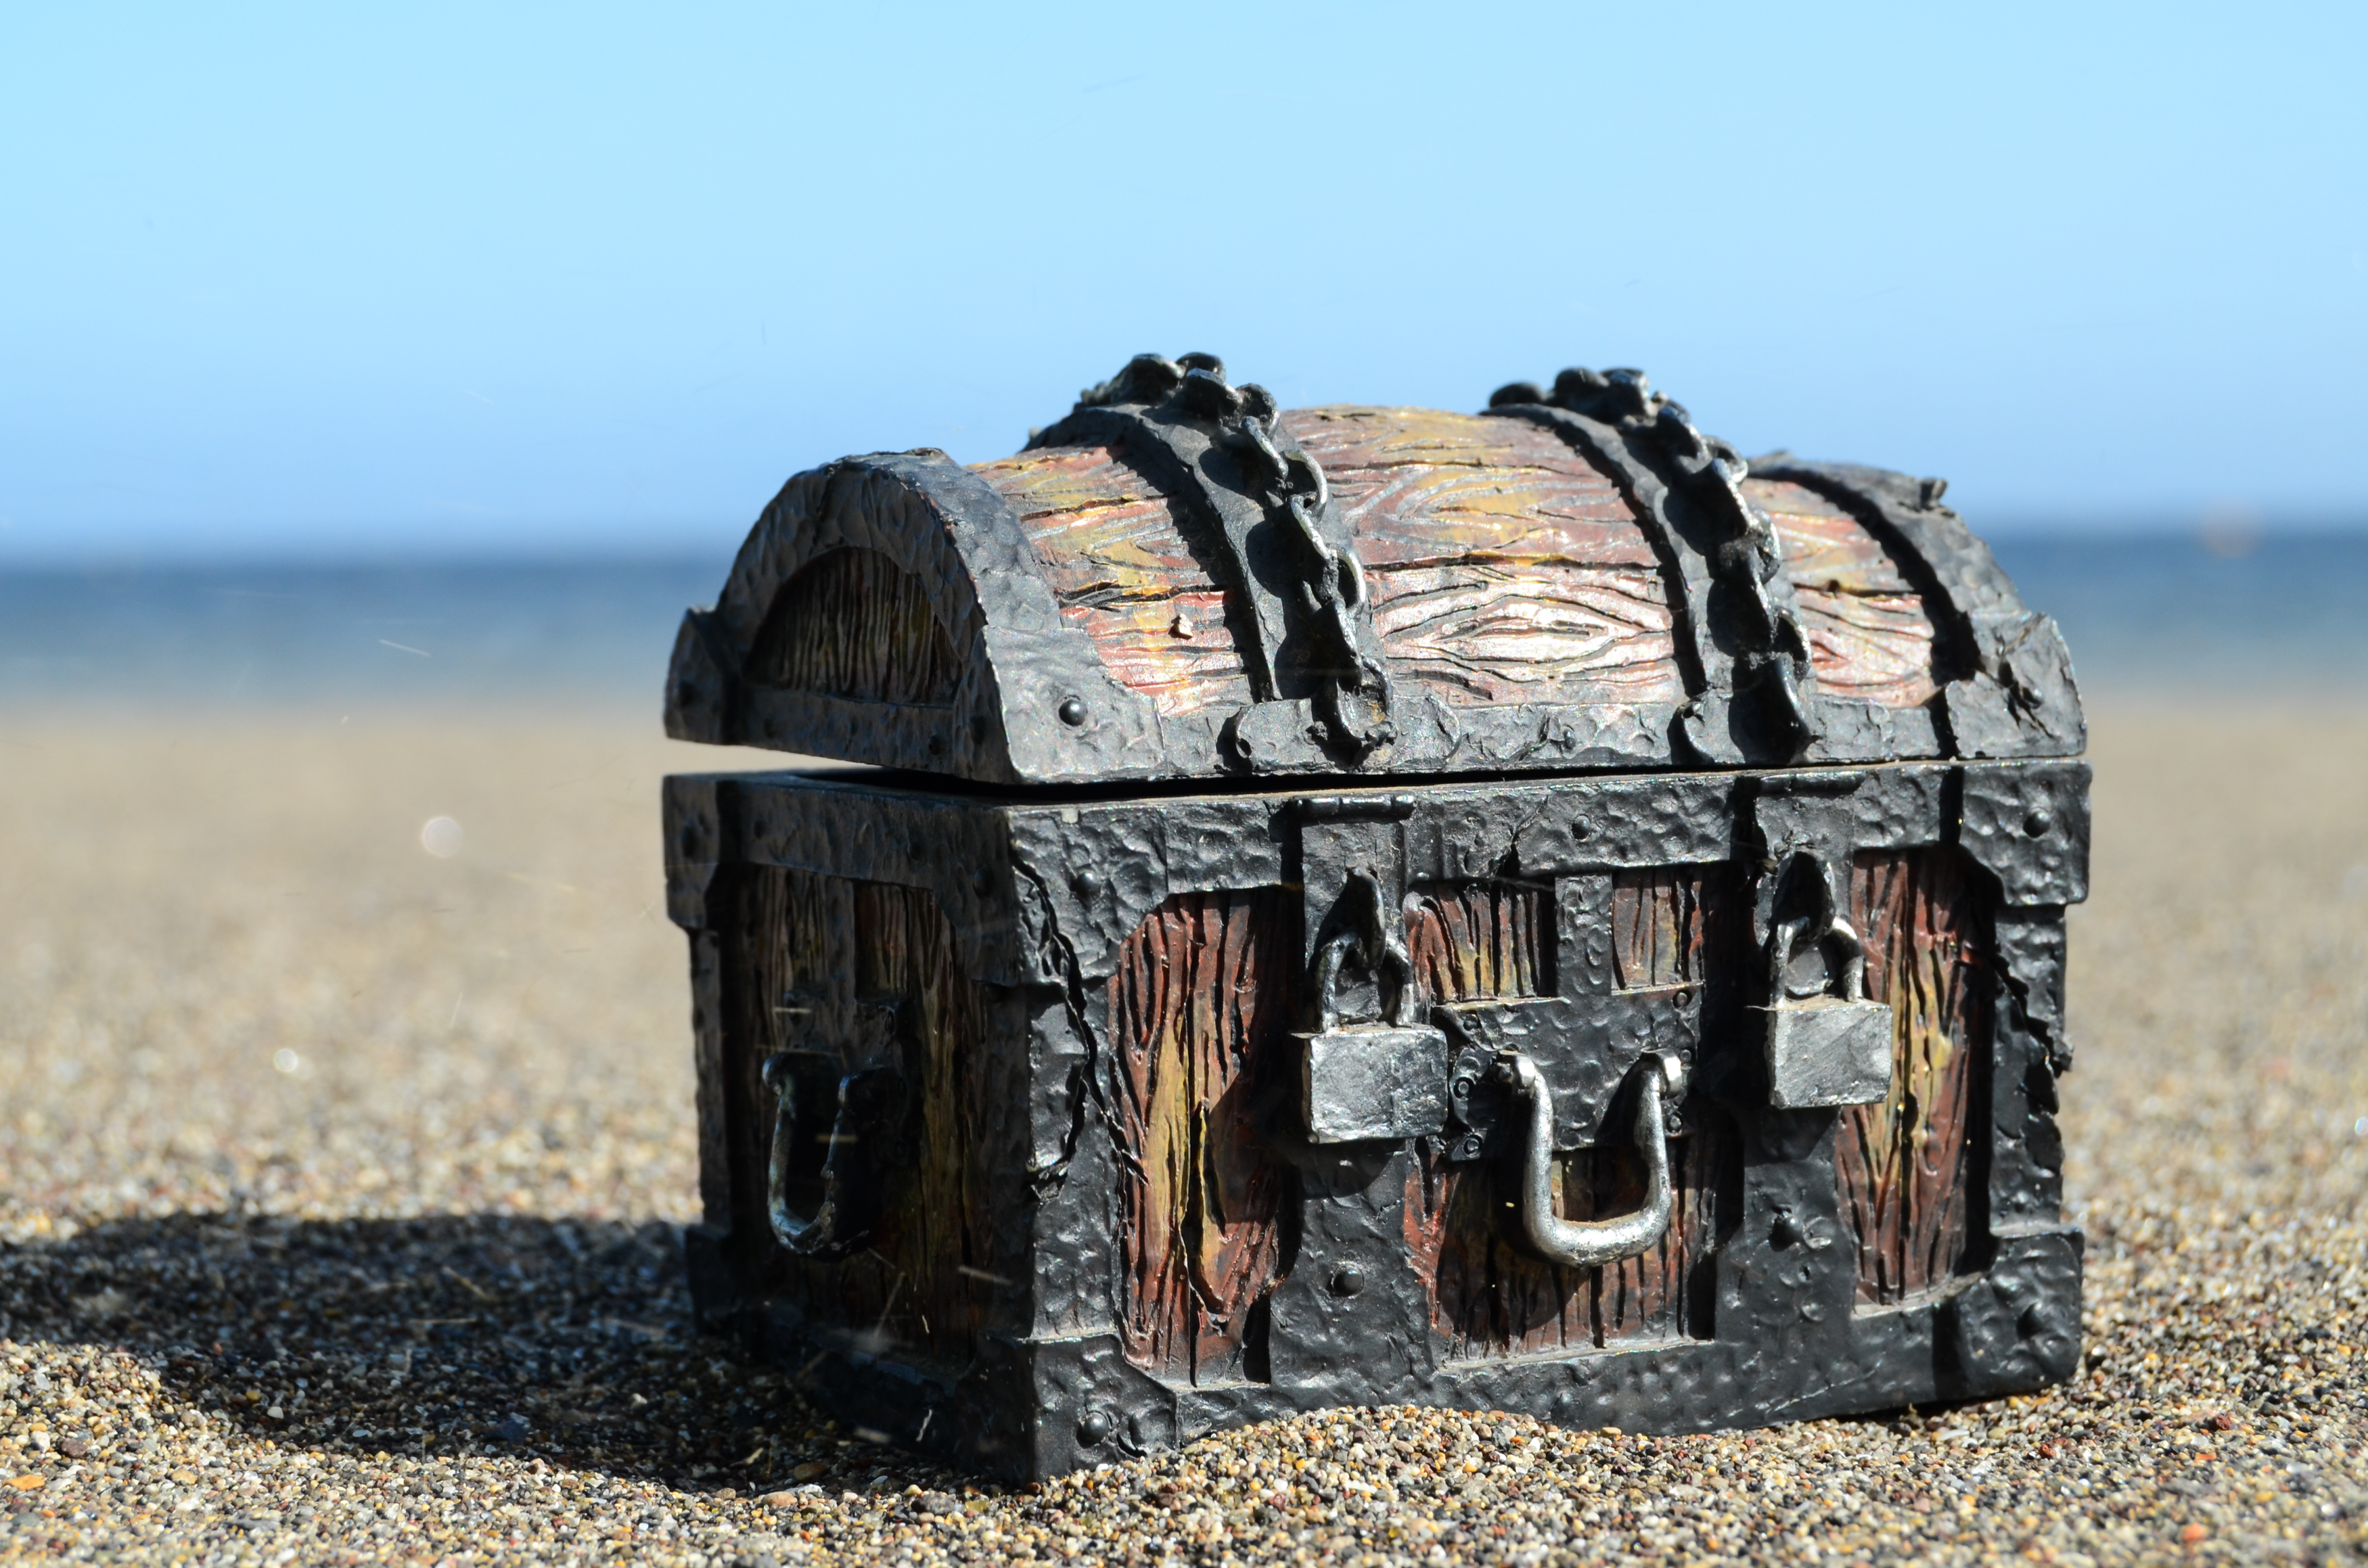 An old wooden chest on a beach